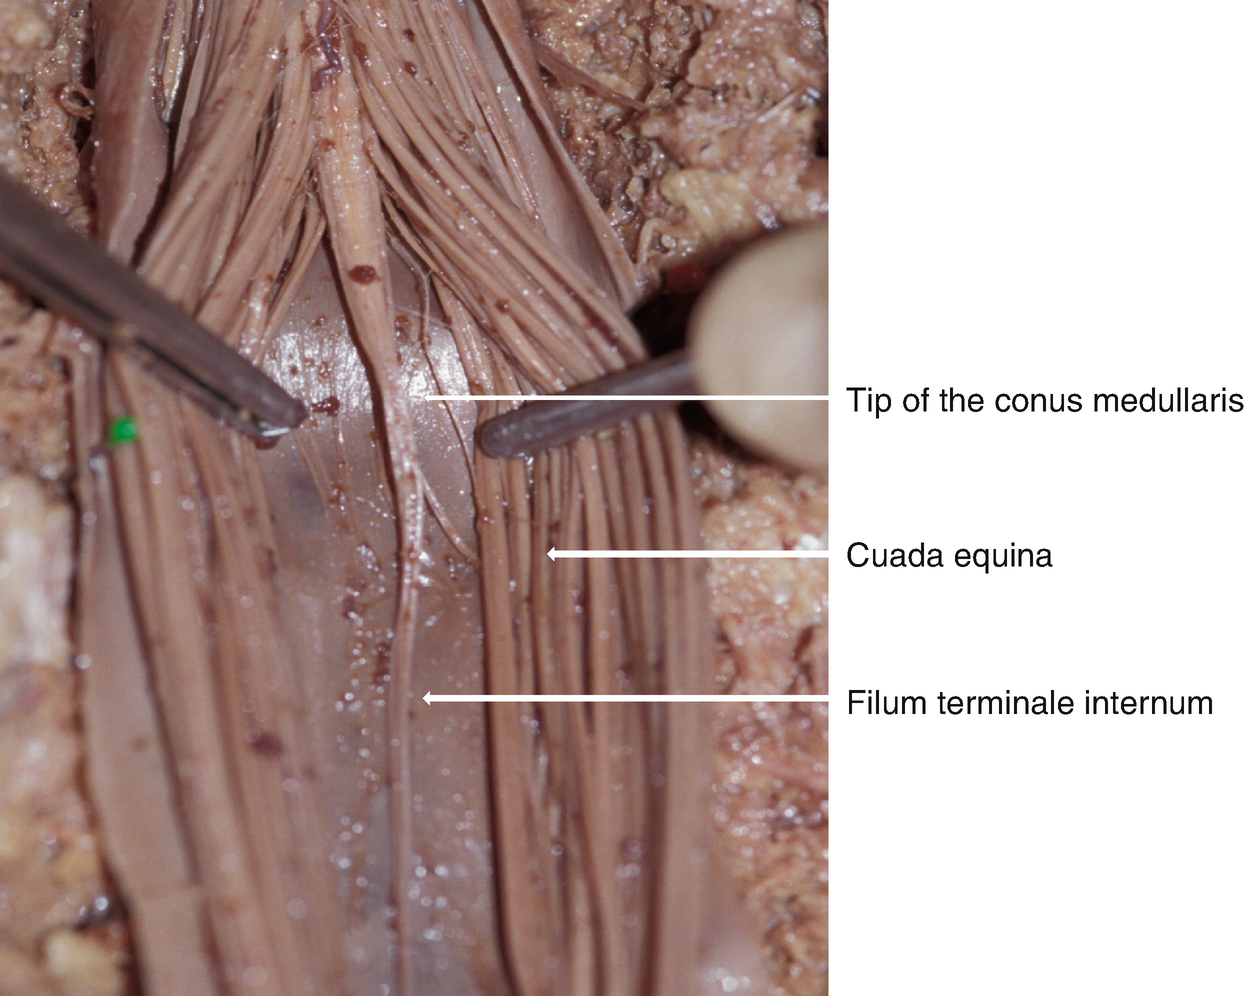 Cauda Equina Injuries Springerlink The filum terminale is a delicate strand of fibrous tissue, about 20 cm in length, proceeding downward from the apex of the conus medullaris. cauda equina injuries springerlink